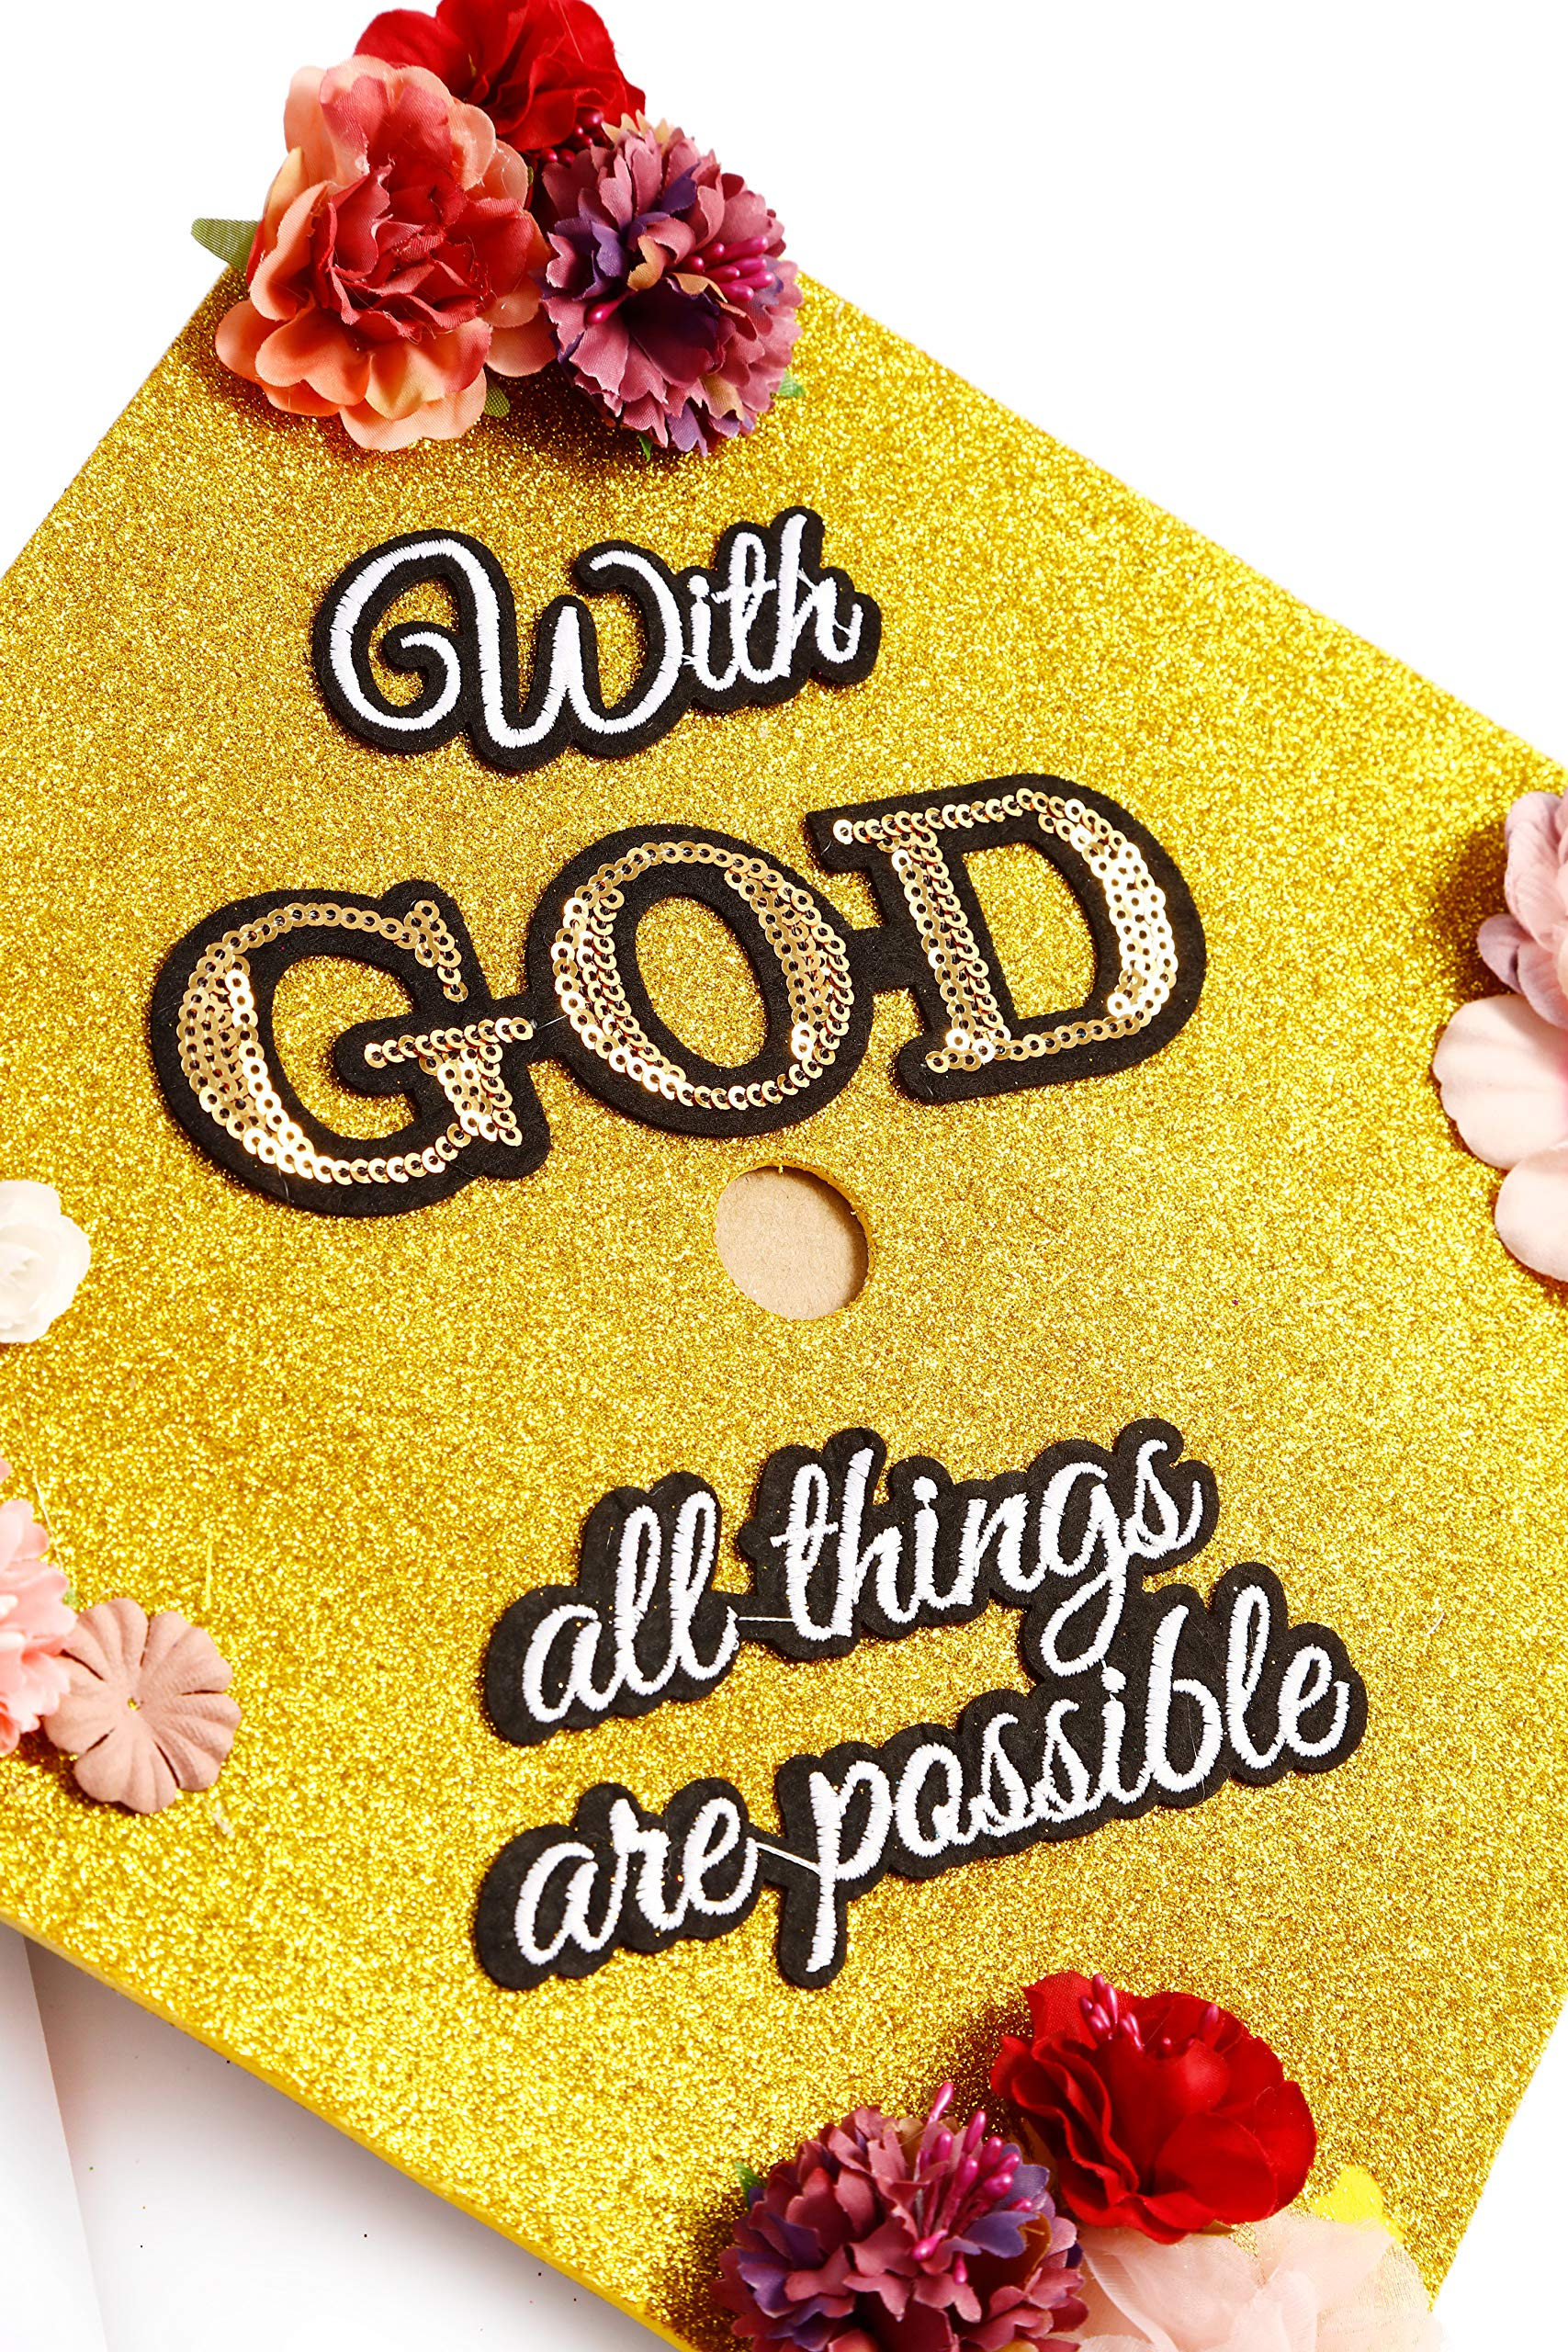 GradWYSE Handmade Graduation Cap Topper Graduation Gifts Graduation Cap Decorations, with God All Things are Possible Gold by GRADWYSE (Image #4)